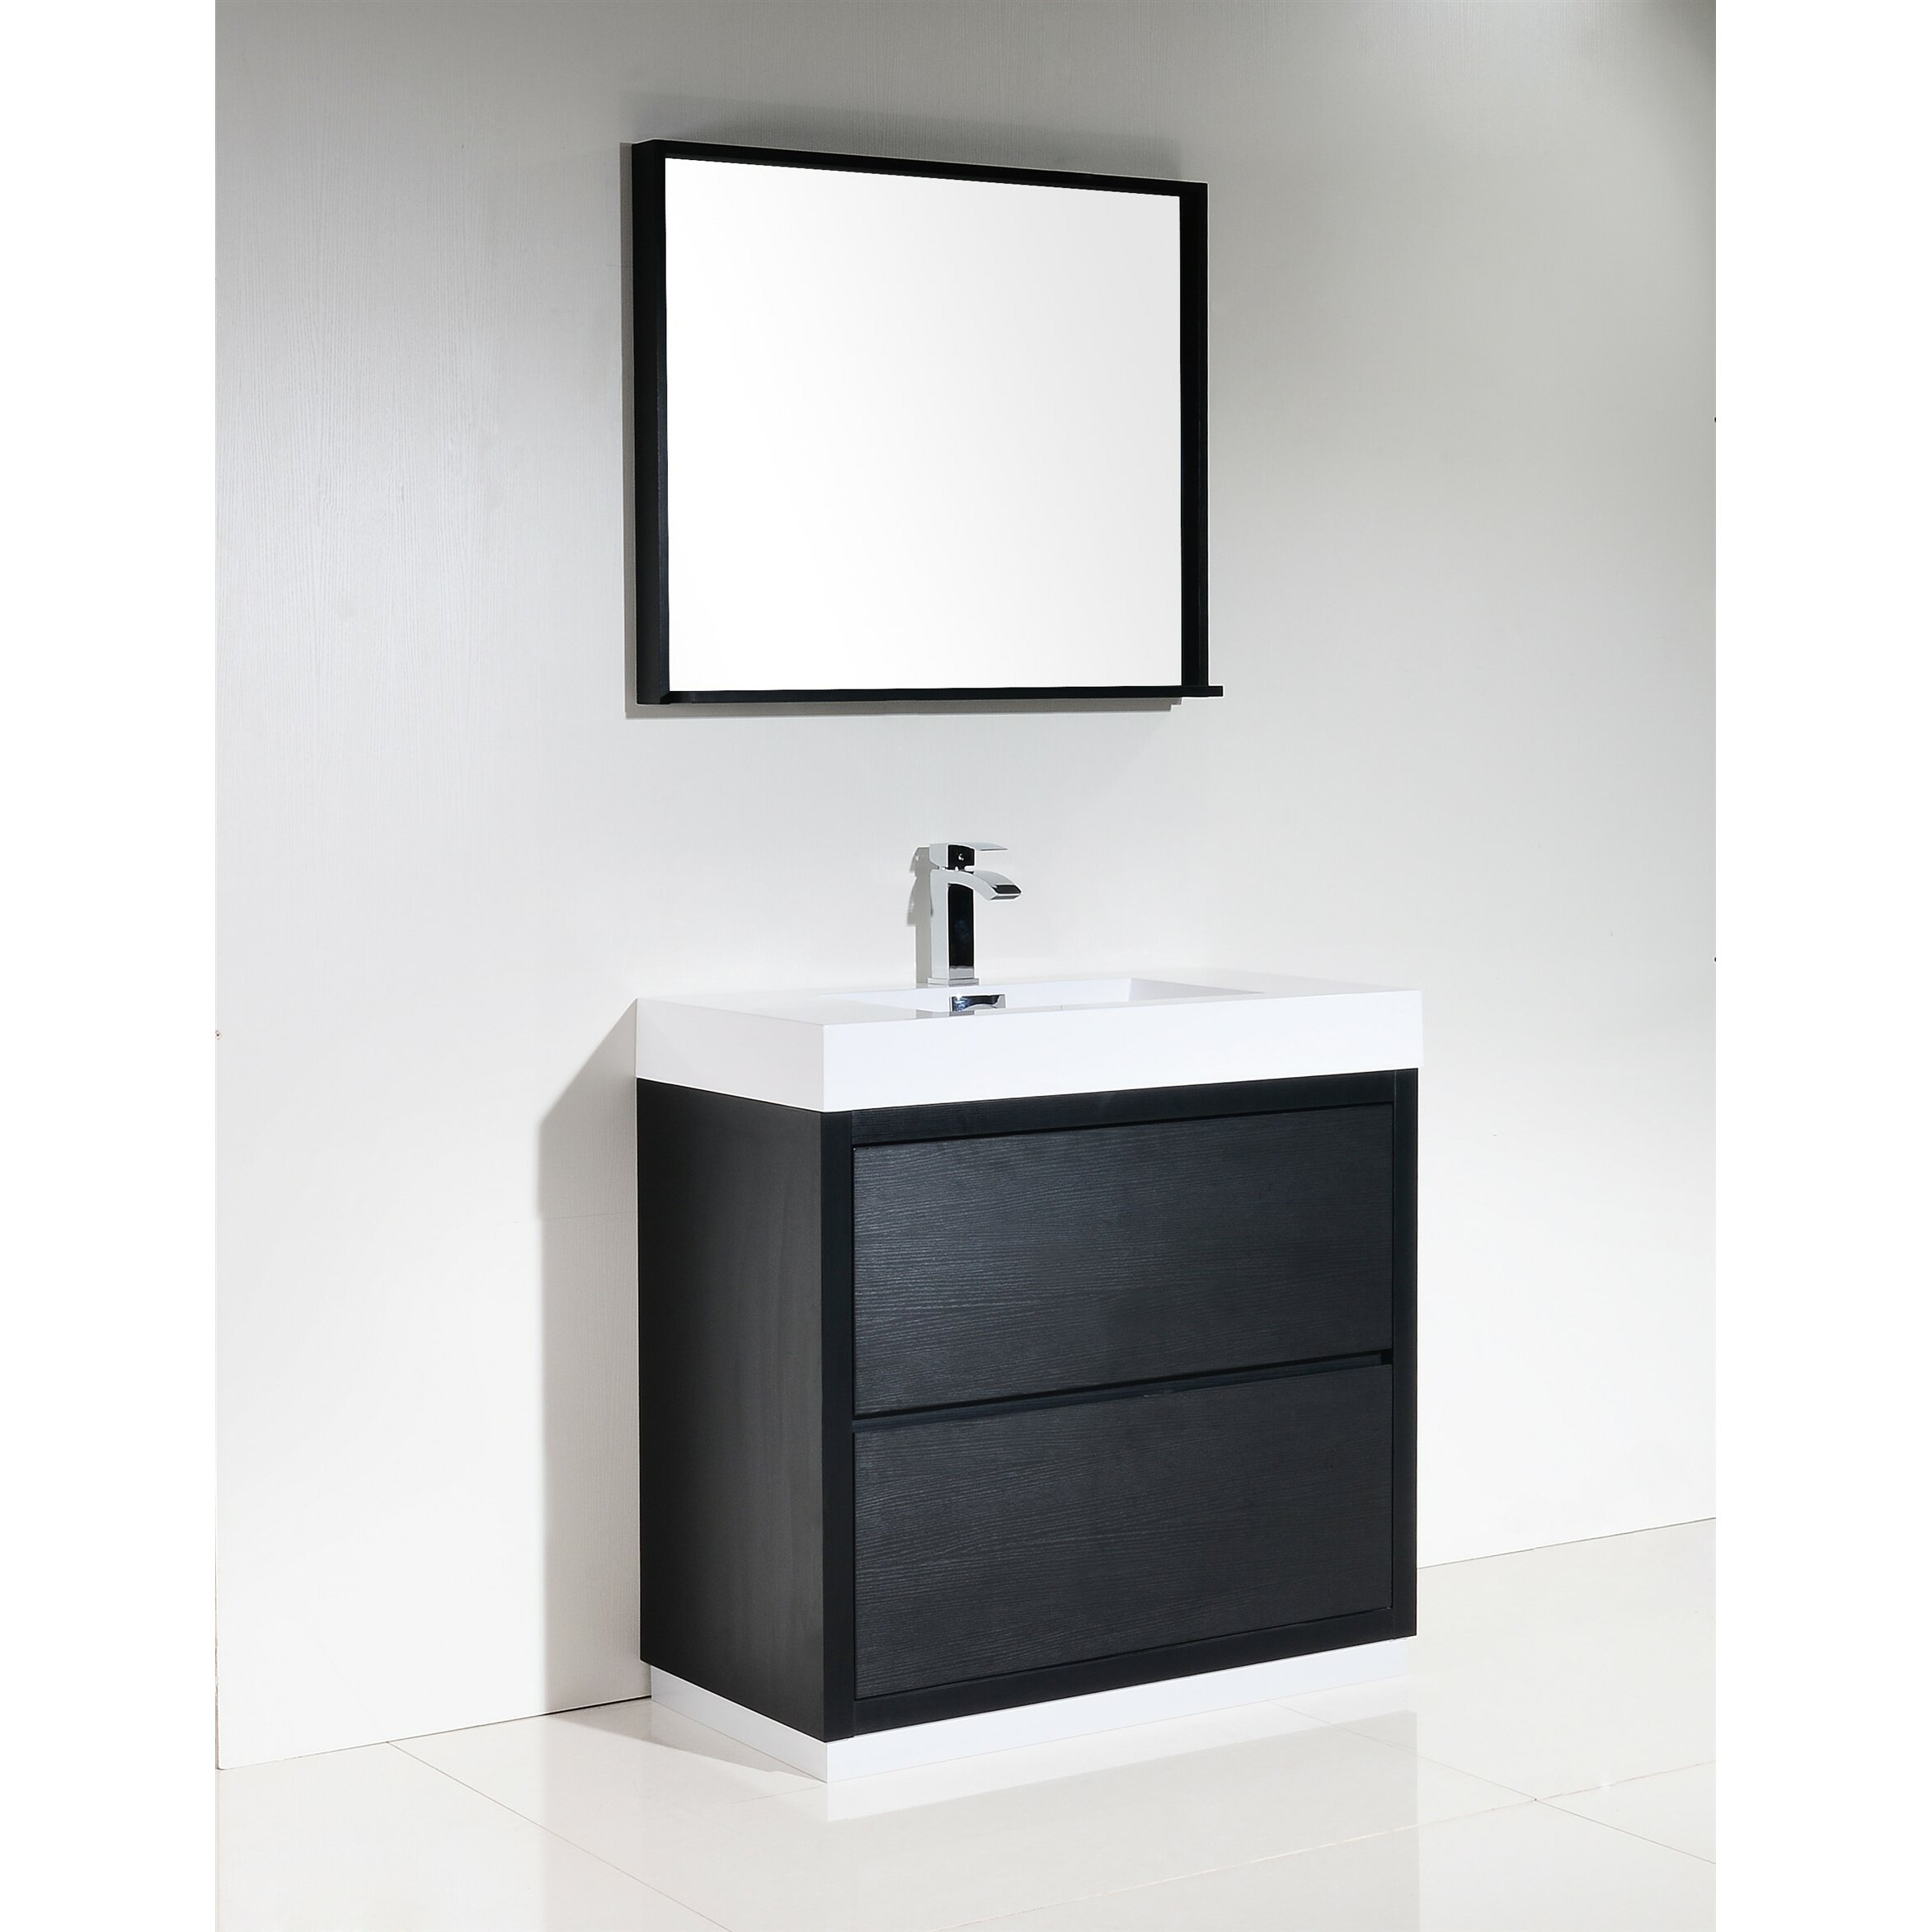 Kube Bath Bliss 36 Single Free Standing Modern Bathroom Vanity Set Reviews